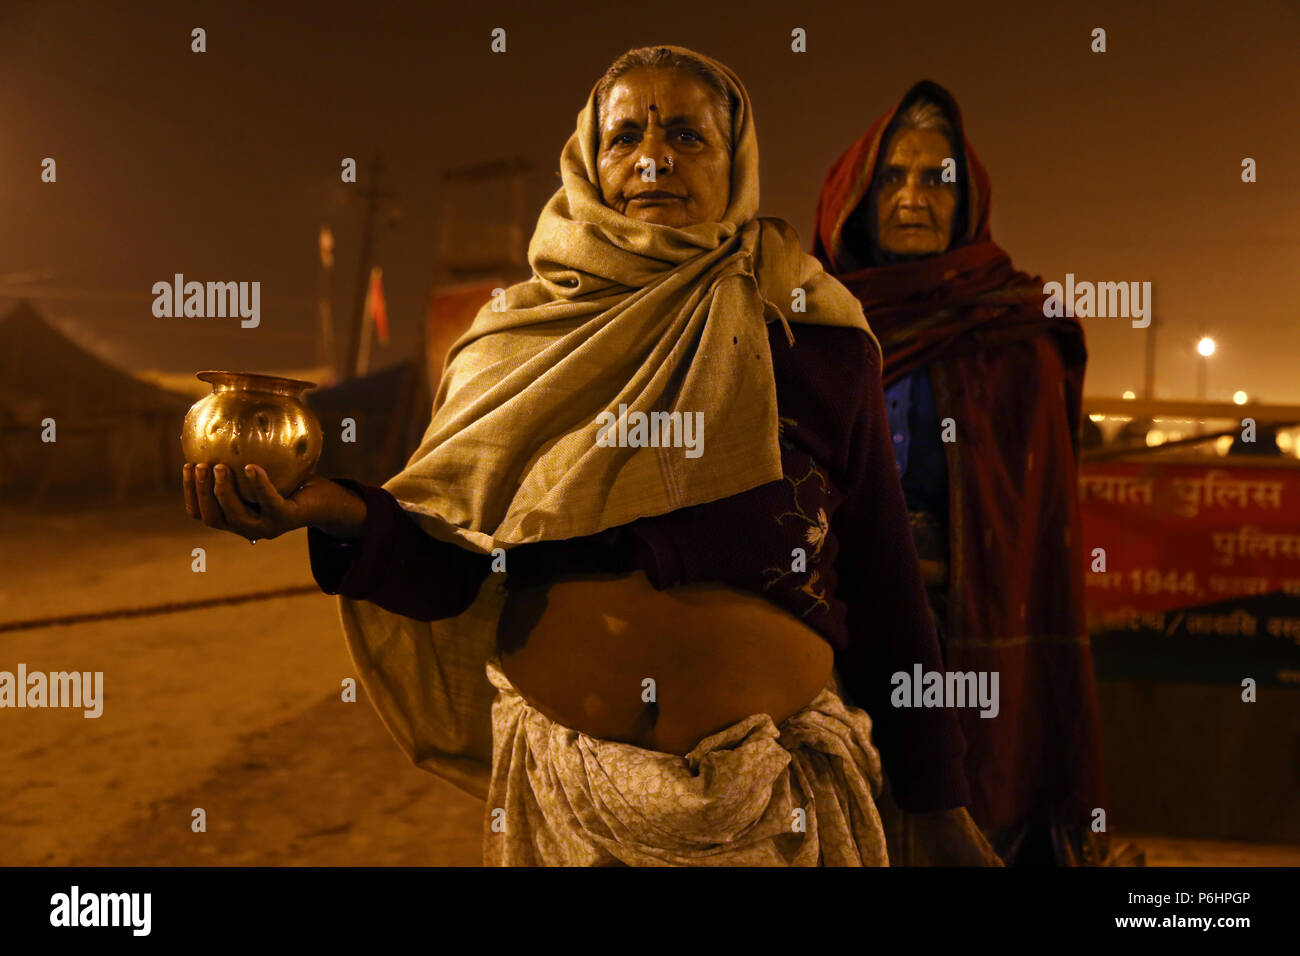 Two Hindu women are proudly showing a jug containing holy water from the Ganges river during pilgrimage  Maha Kumbh mela 2013 in Allahabad , India - Stock Image